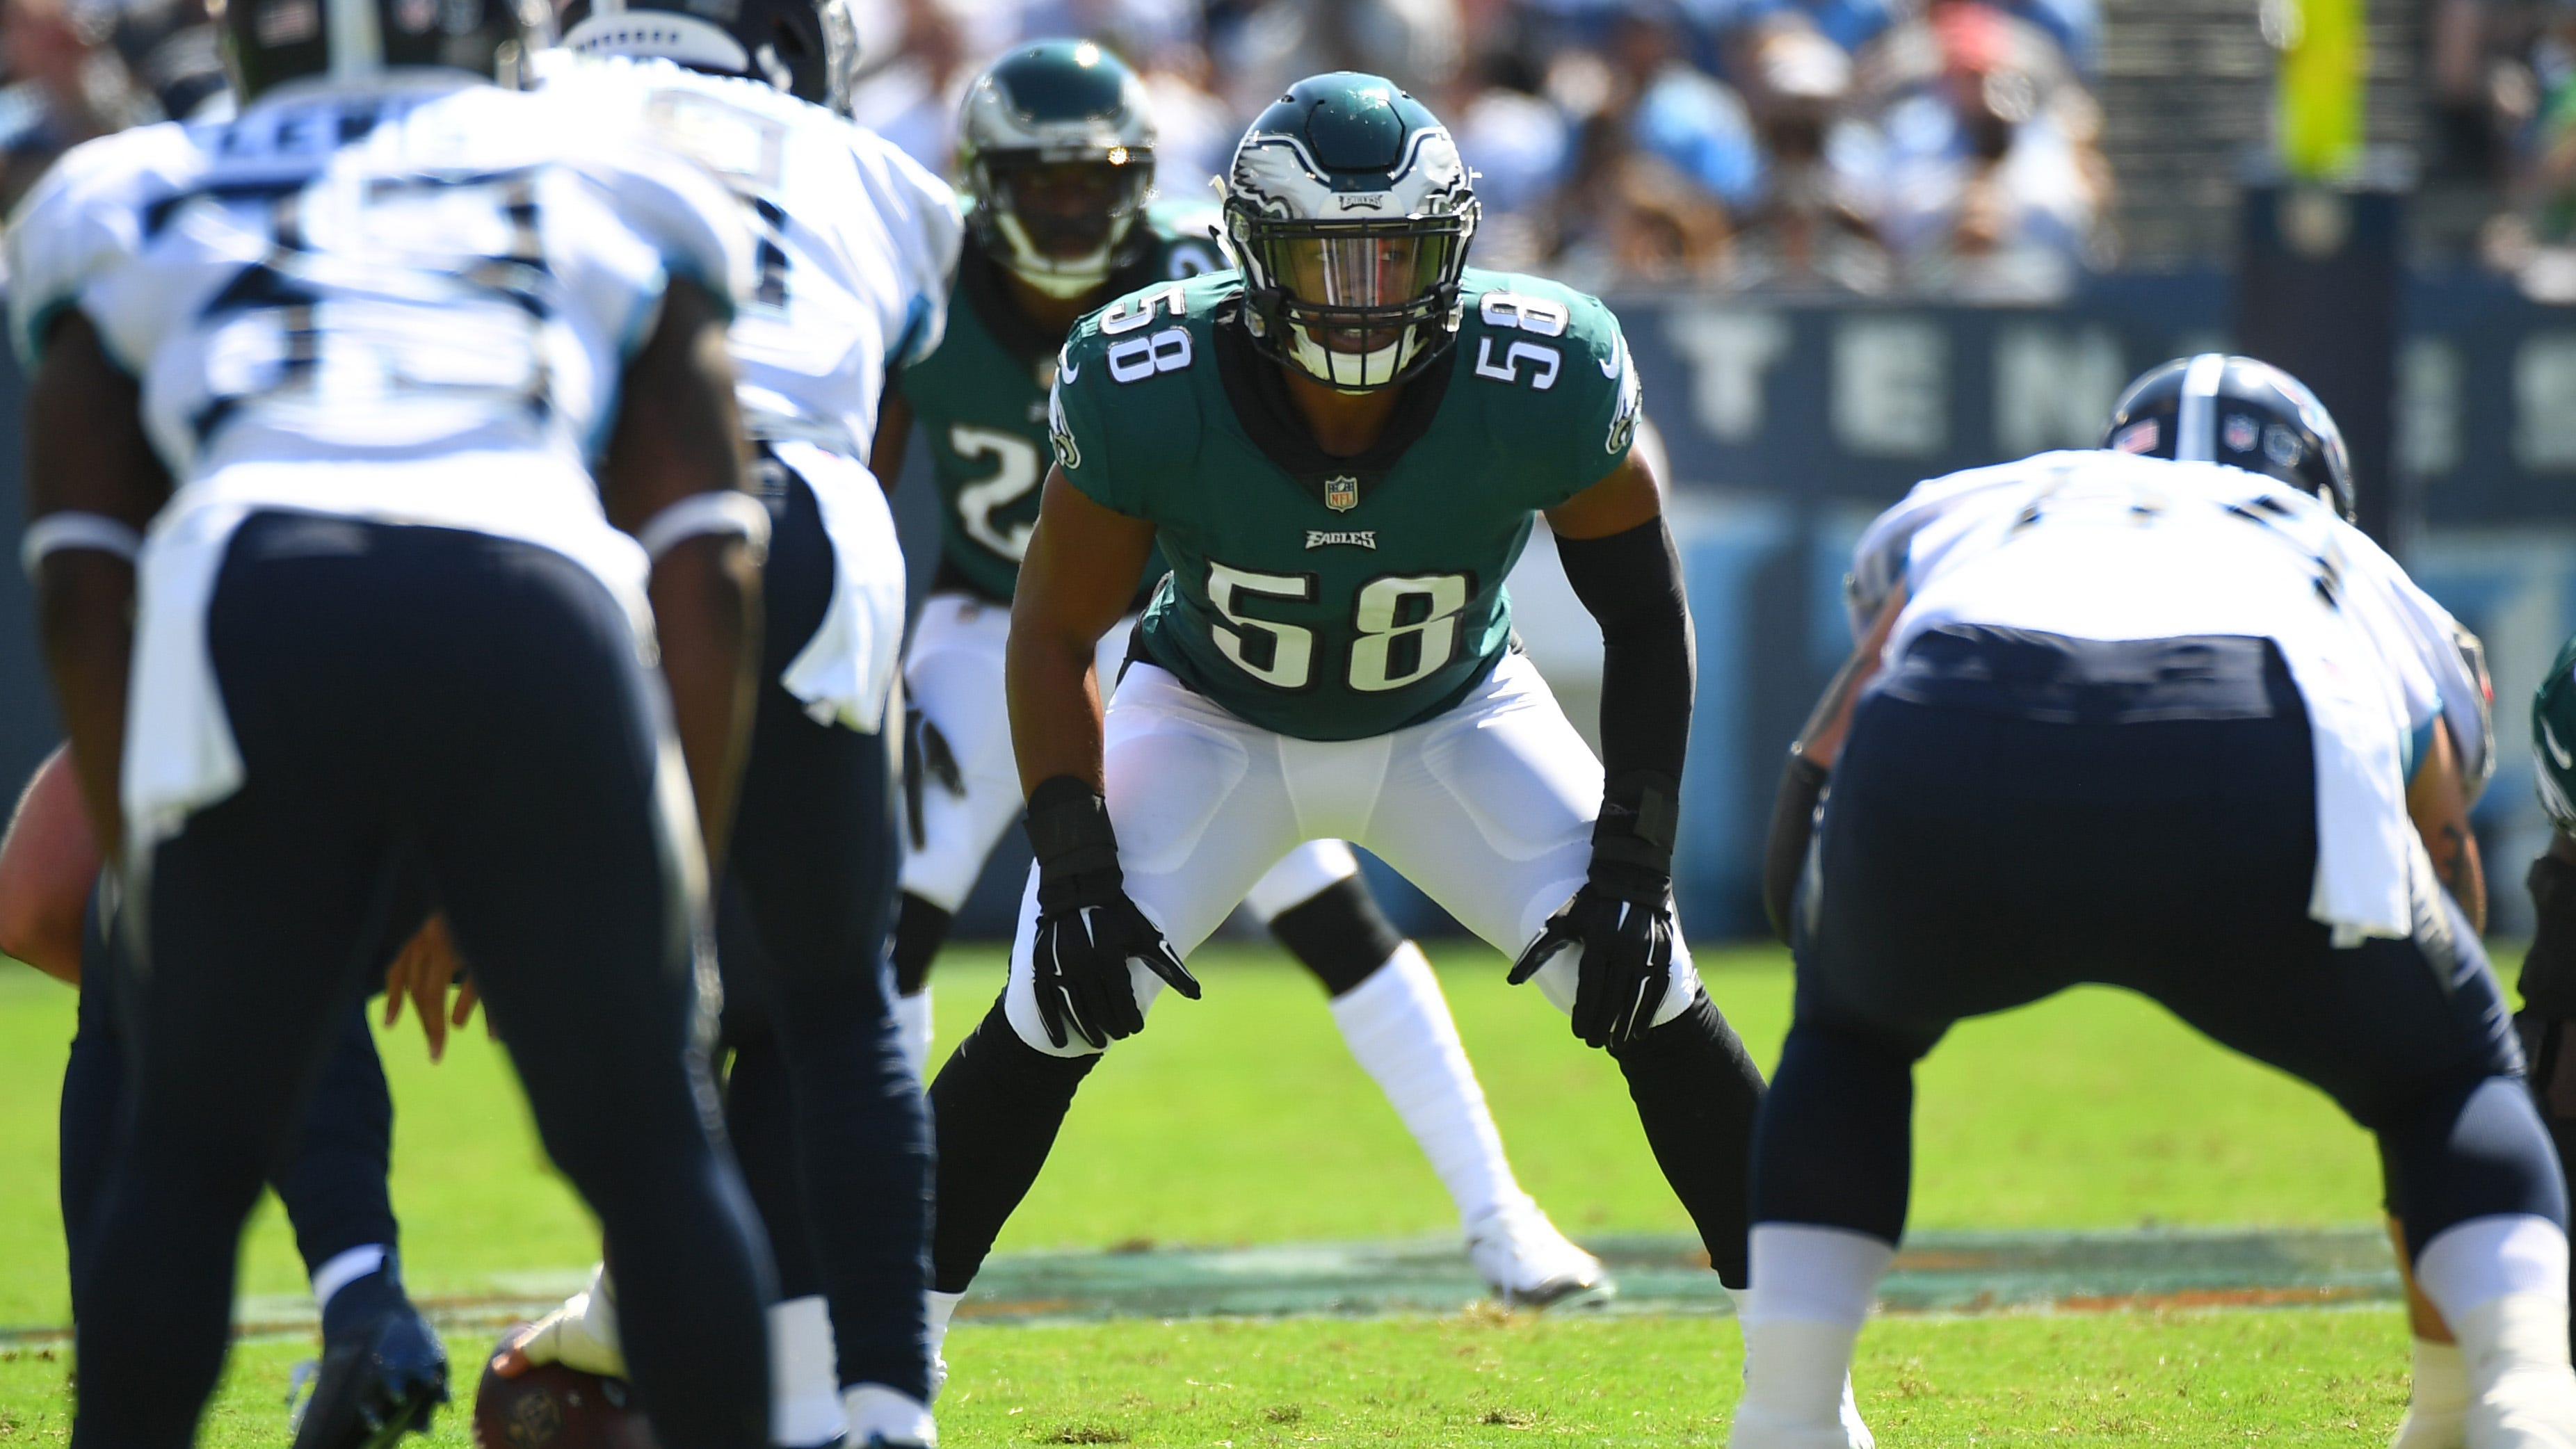 Fair or not, new Cardinals middle linebacker Jordan Hicks has a reputation for being injury prone, and he's out to prove that's no longer an issue.